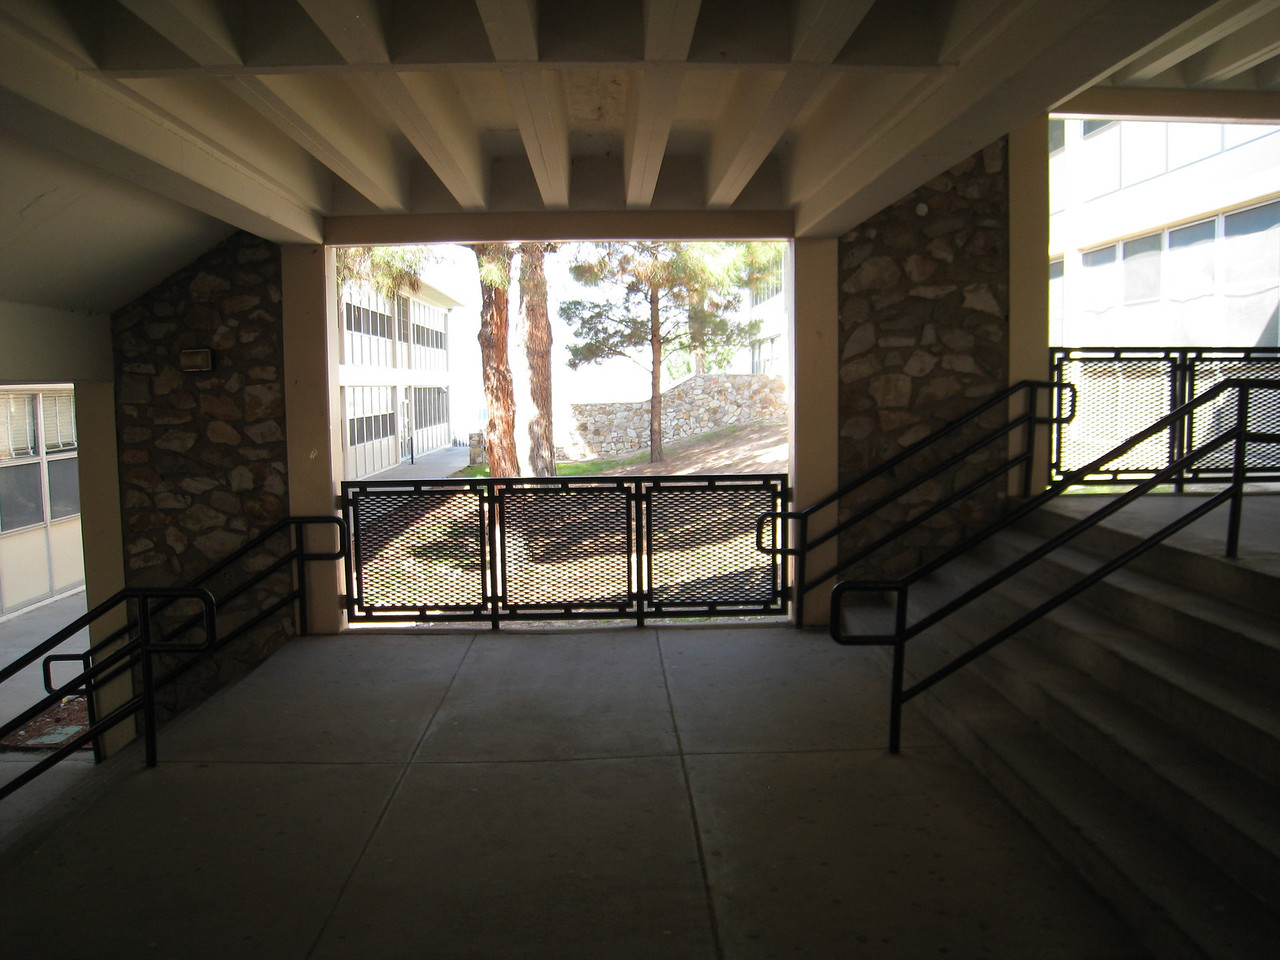 In between A and B buildings at Coronado